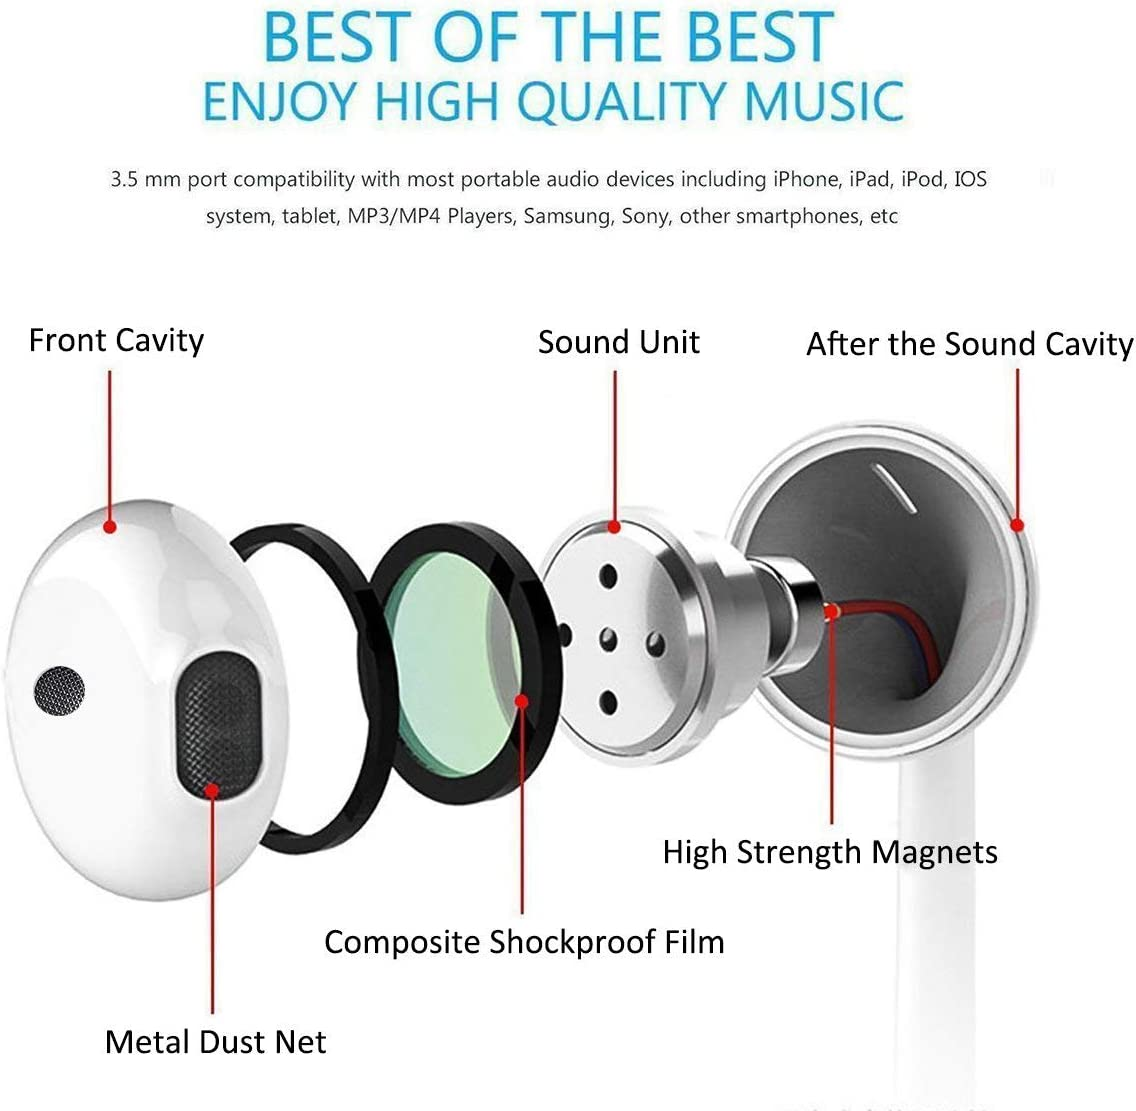 Lighting Connector Earbuds Earphone Wired Headphones Headset with Mic and Volume Control,Sound Pretty,Compatible with iPhone 11 Pro Max//Xs Max//XR//X//7//8 Plus Plug and Play Telescope Cases